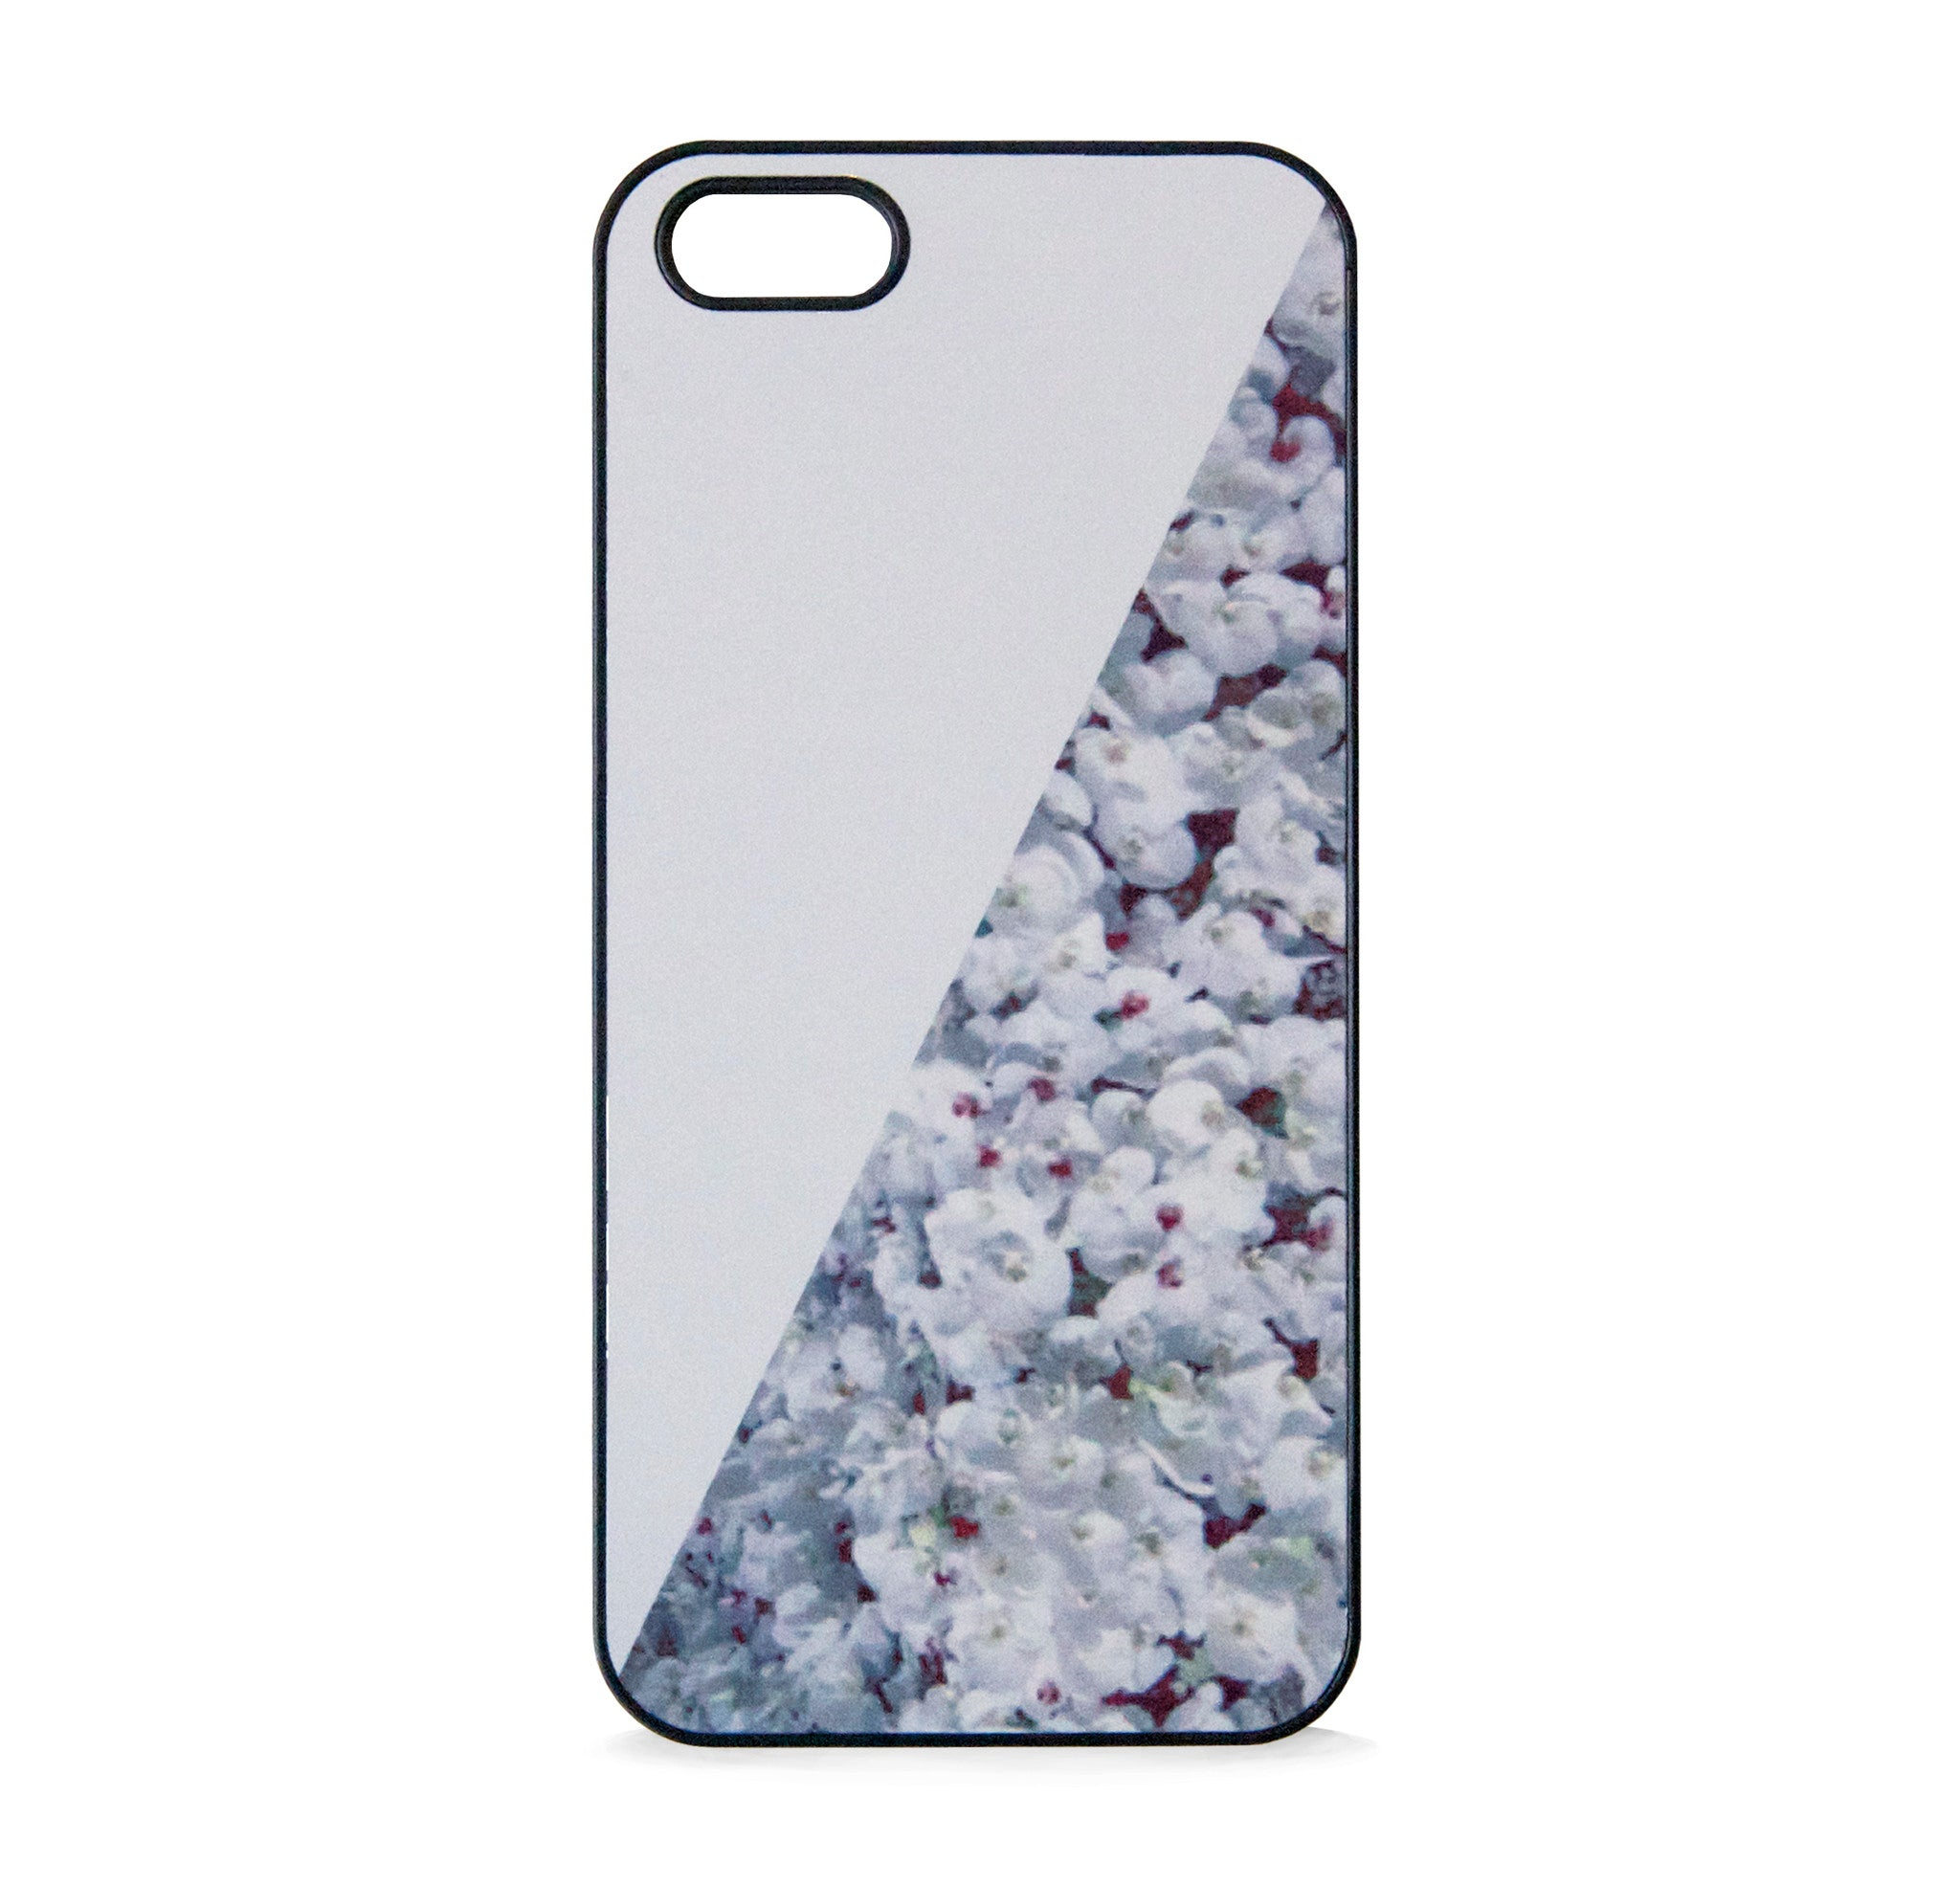 FLORAL PRINT WHITE FOR IPHONE 5/5S